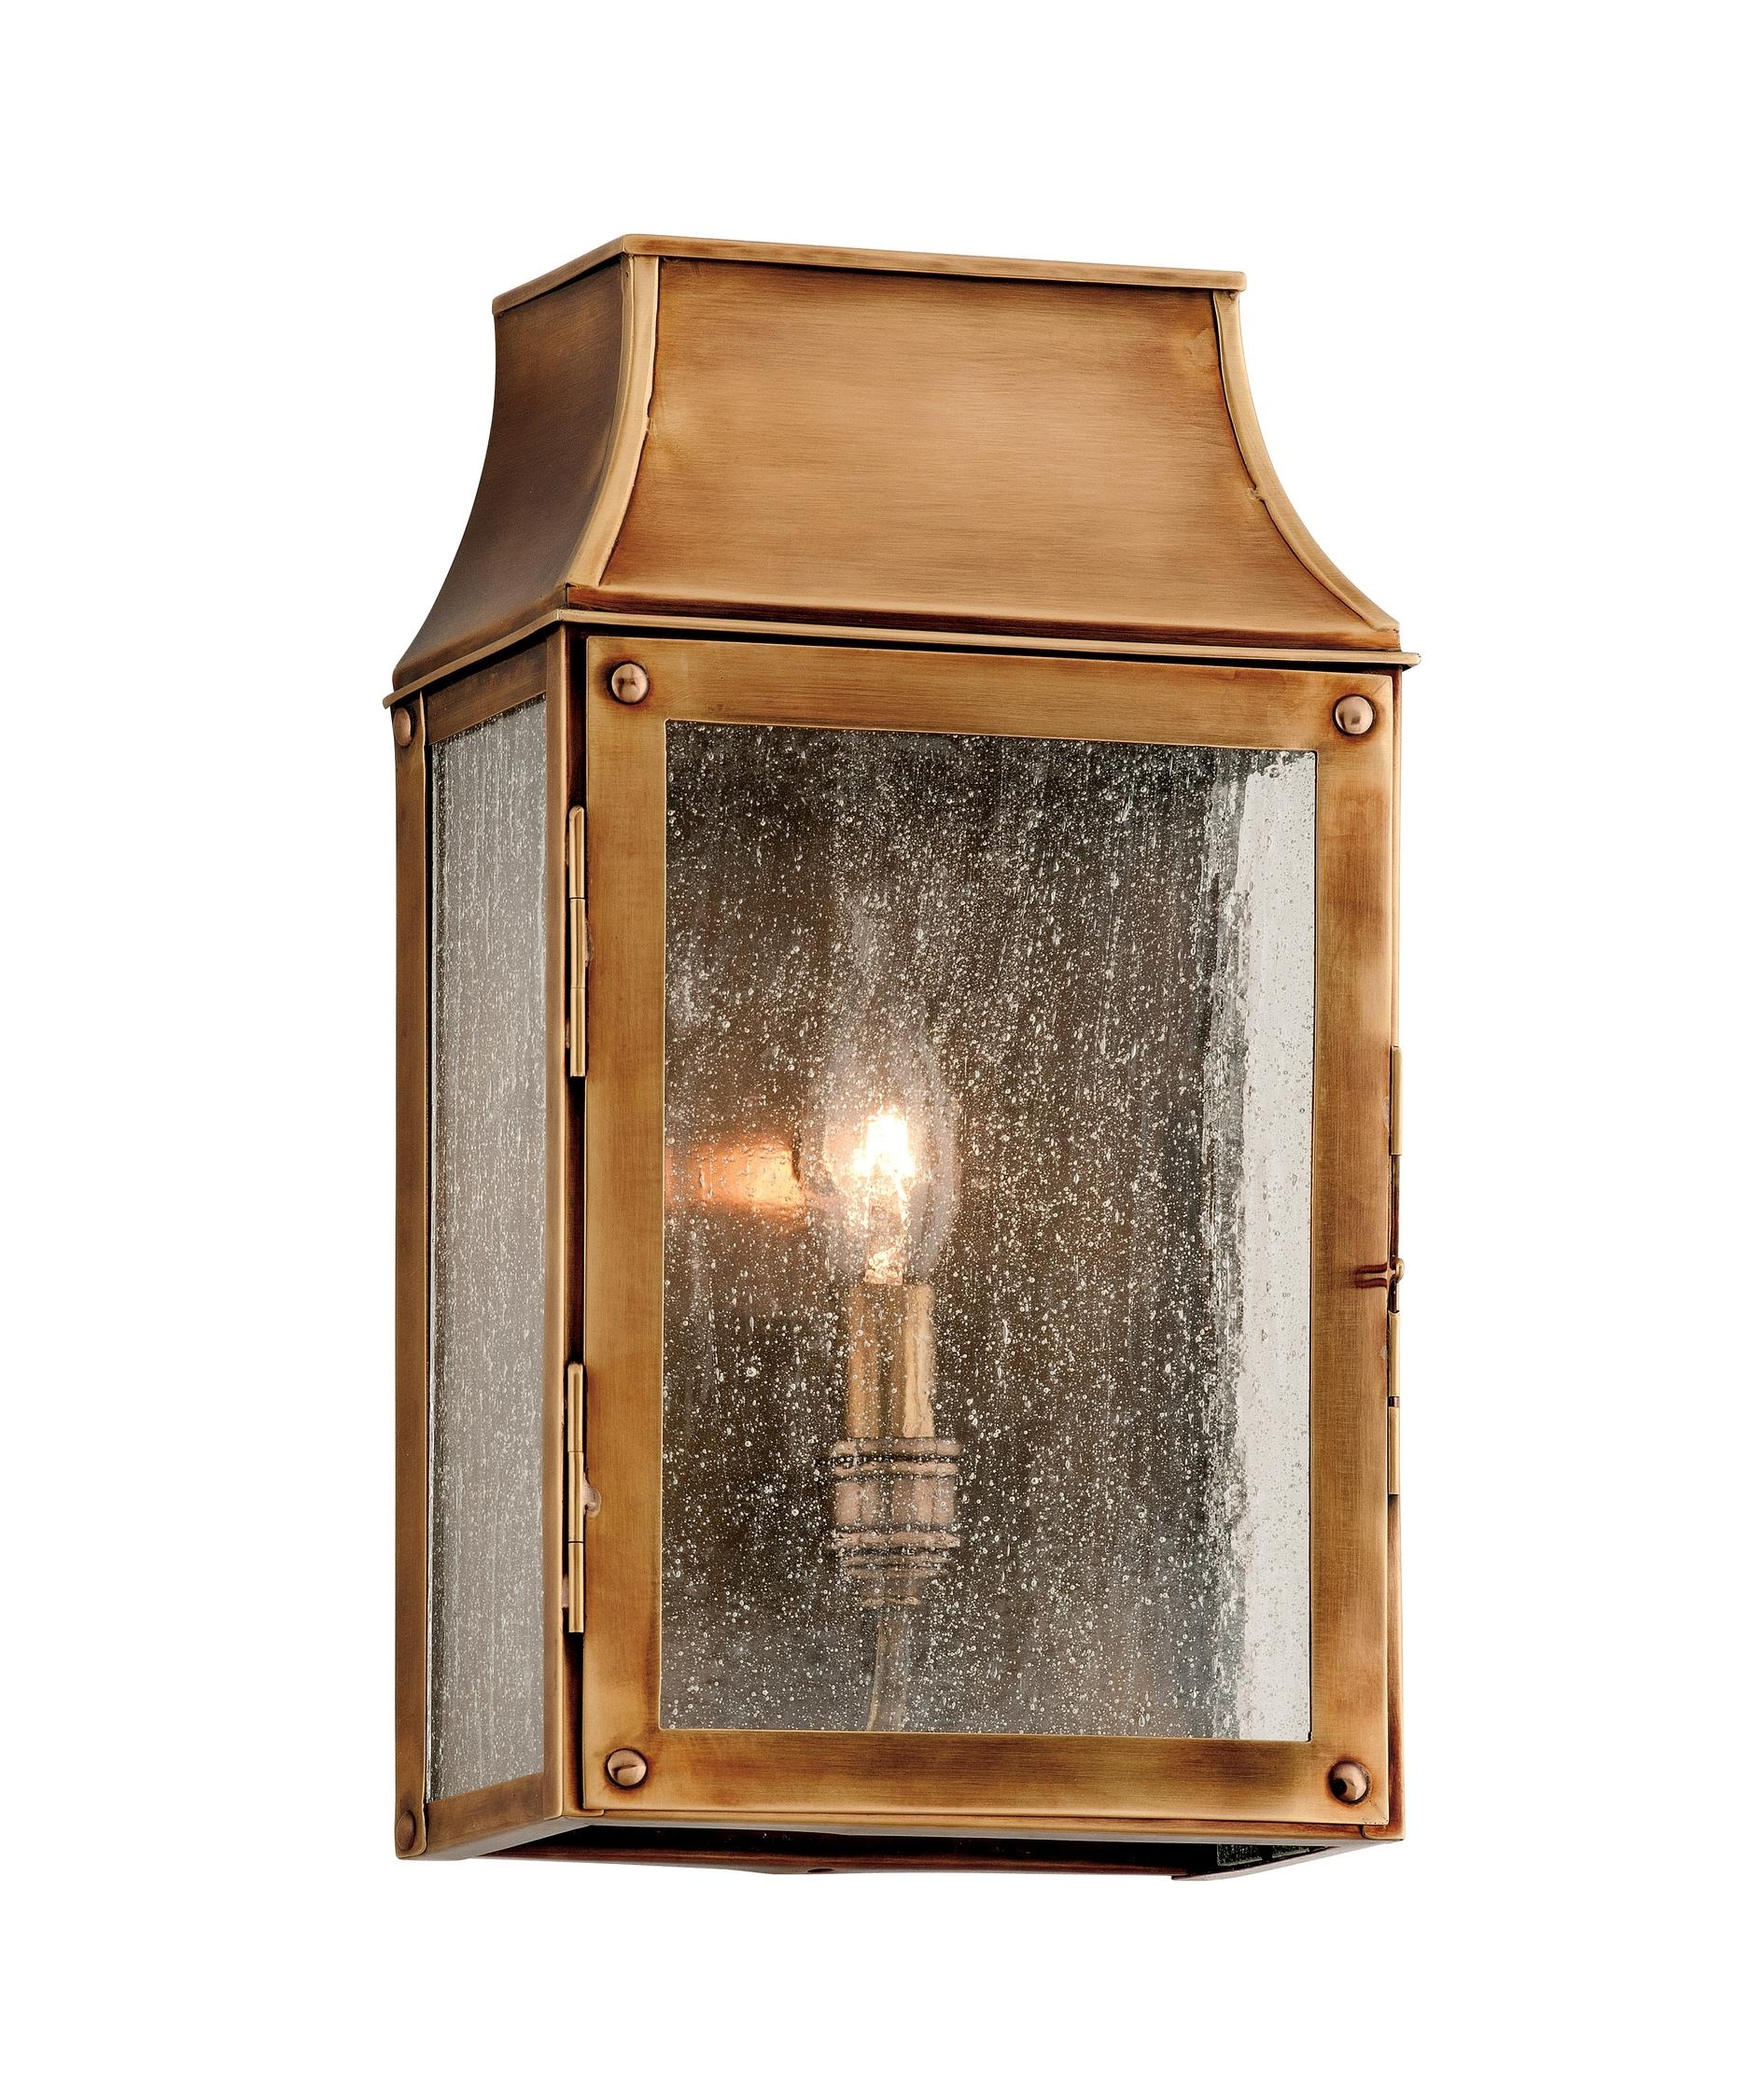 Image of: Troy Lighting B3421 Beacon Hill 7 Inch Wide 1 Light Outdoor Wall In Brass Outdoor Lights Brass Outdoor Lights Beautify Exterior